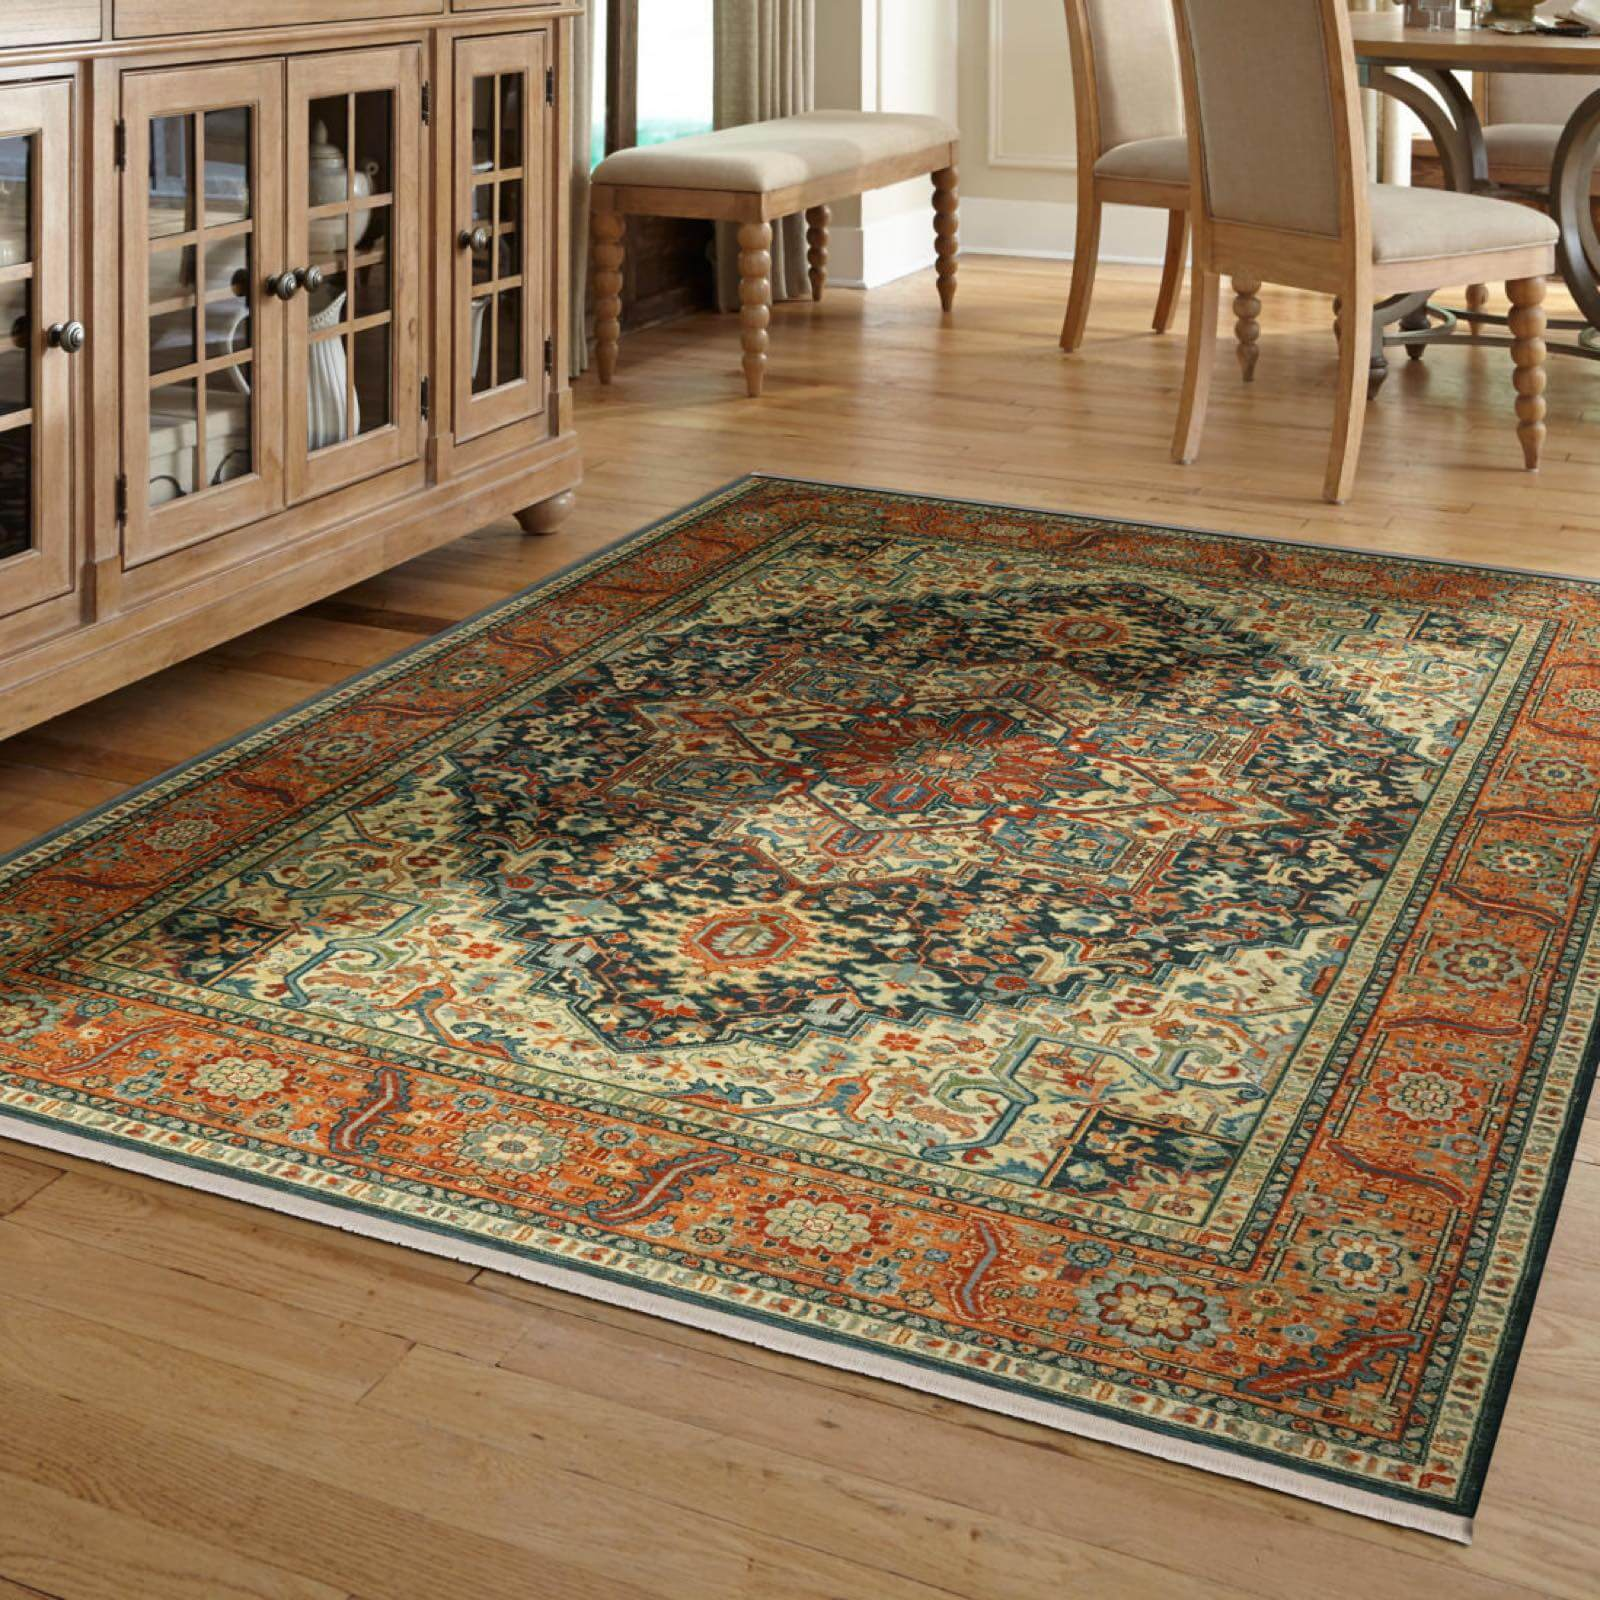 karastan_maharajah_room | McSwain Carpet & Floors